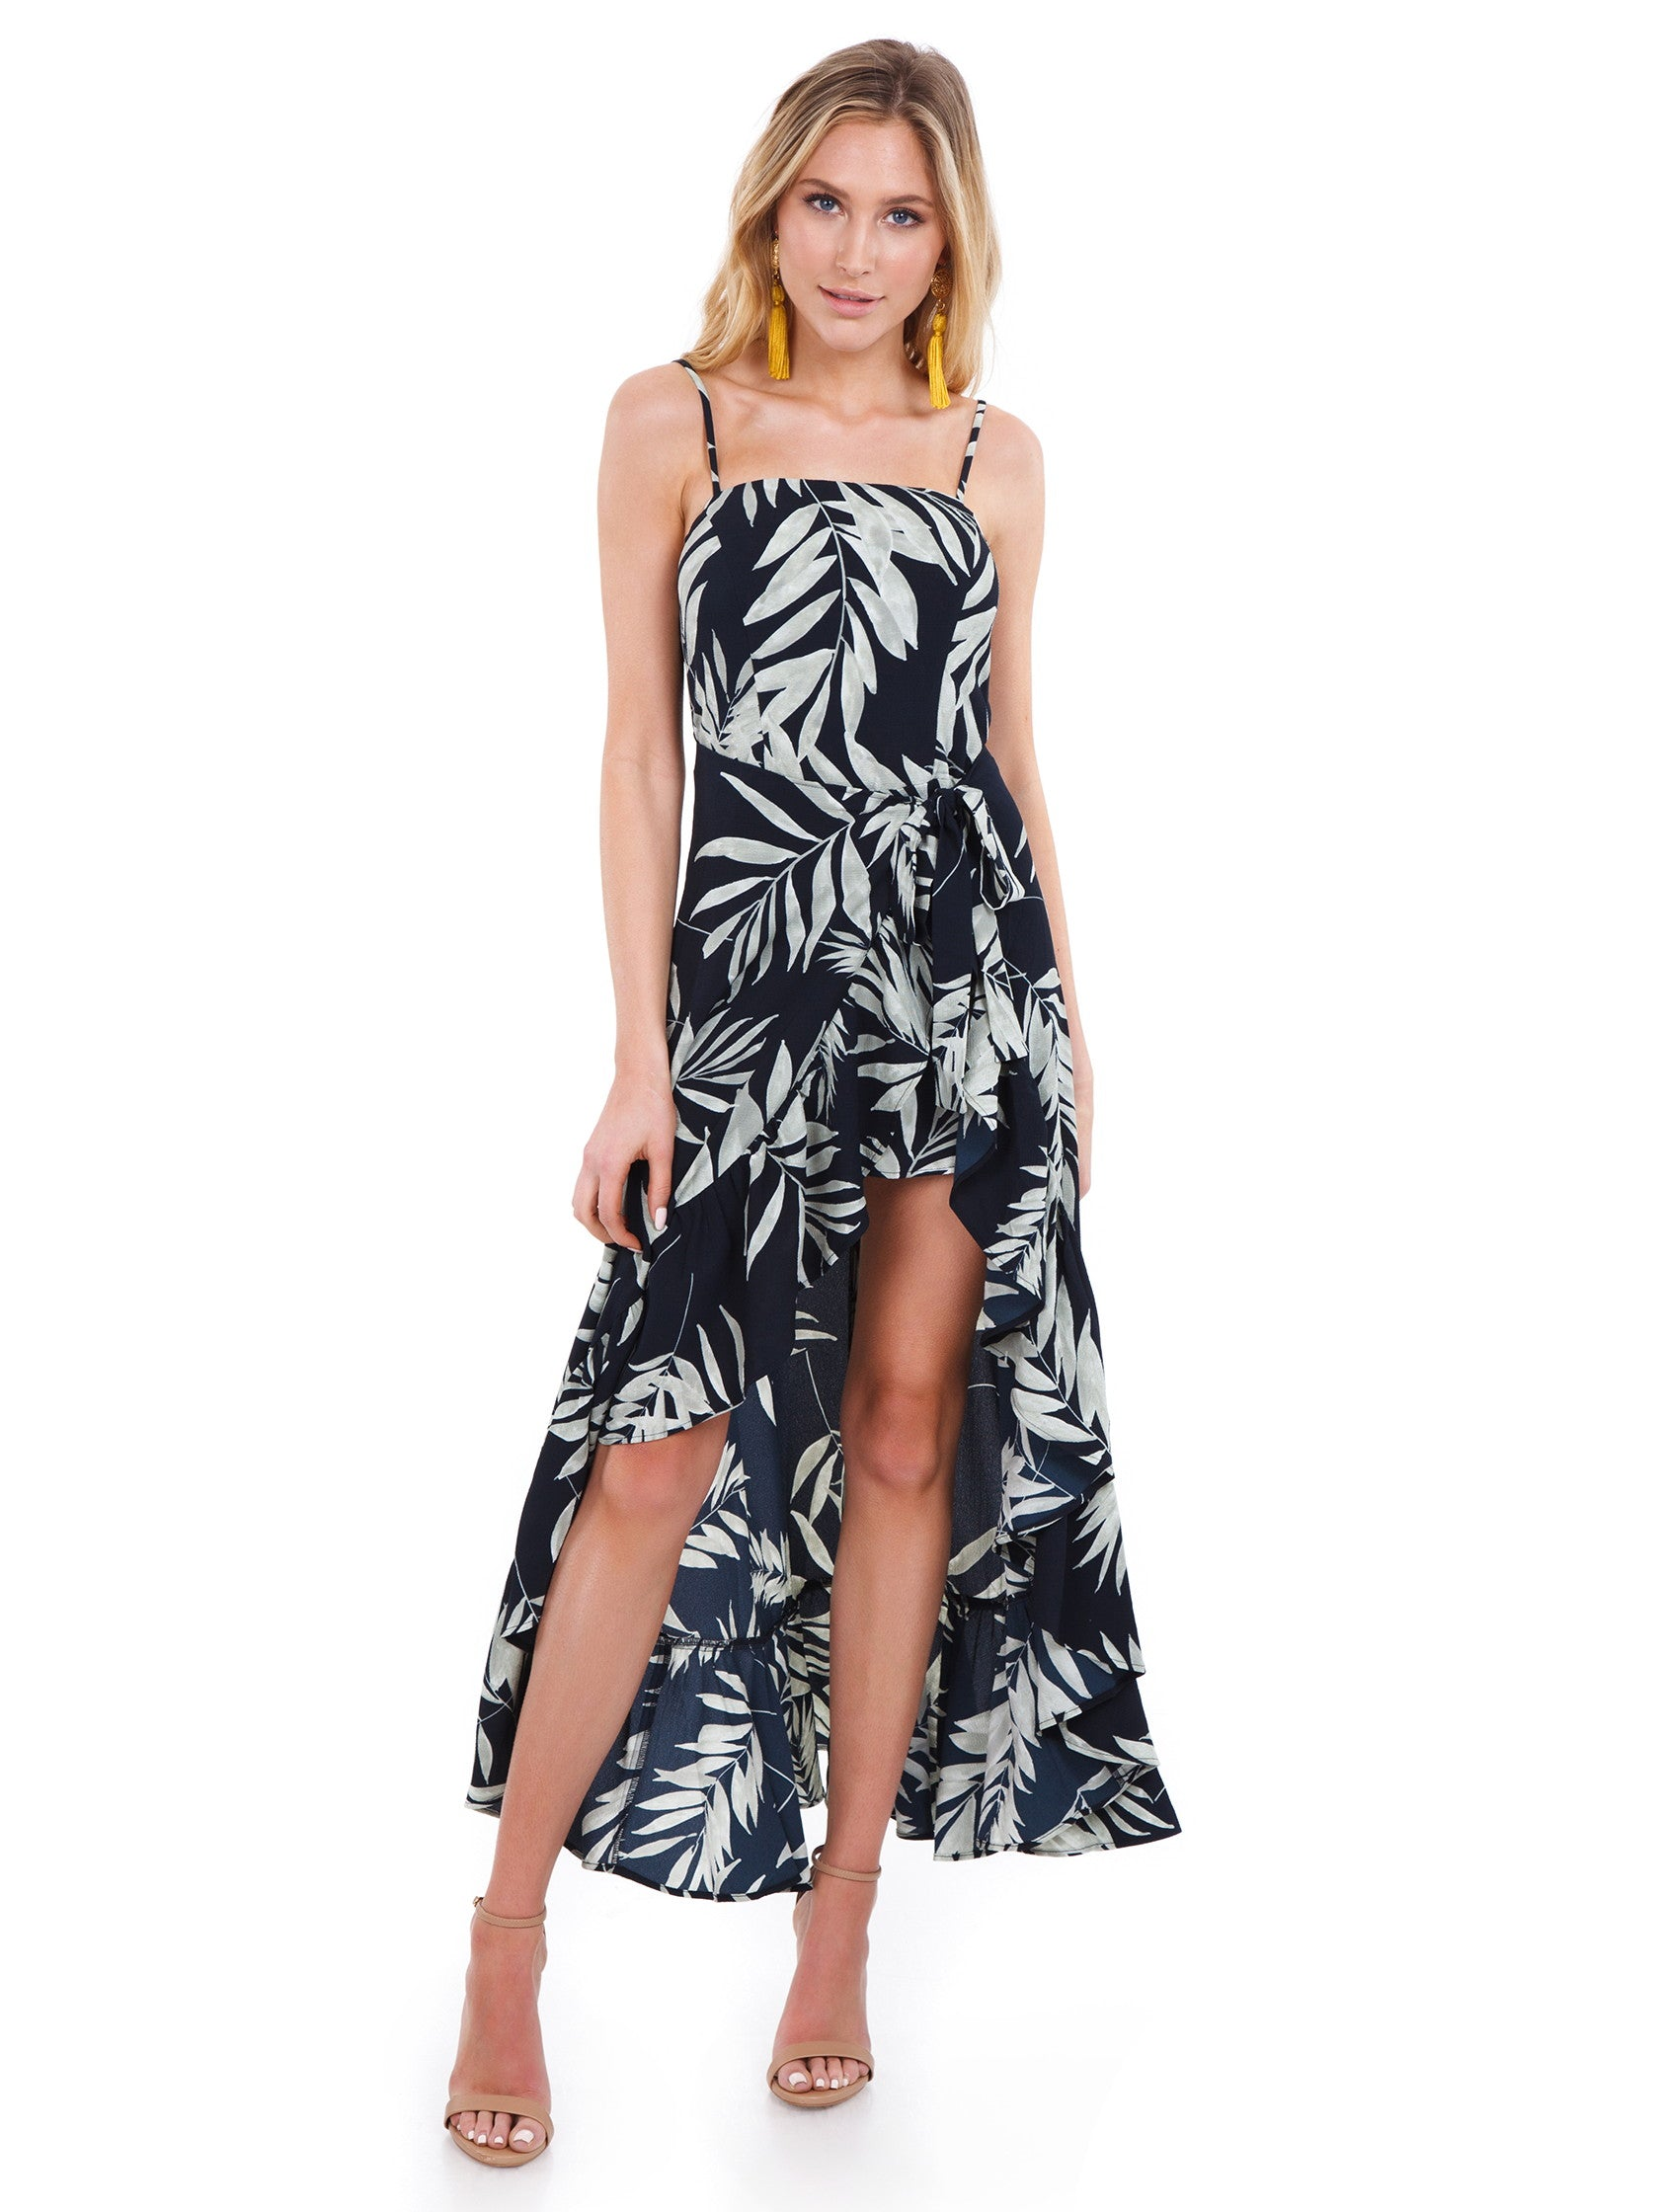 e7d4c04a2b Girl outfit in a jumpsuit rental from Show Me Your Mumu called Rocco Romper Maxi  Dress